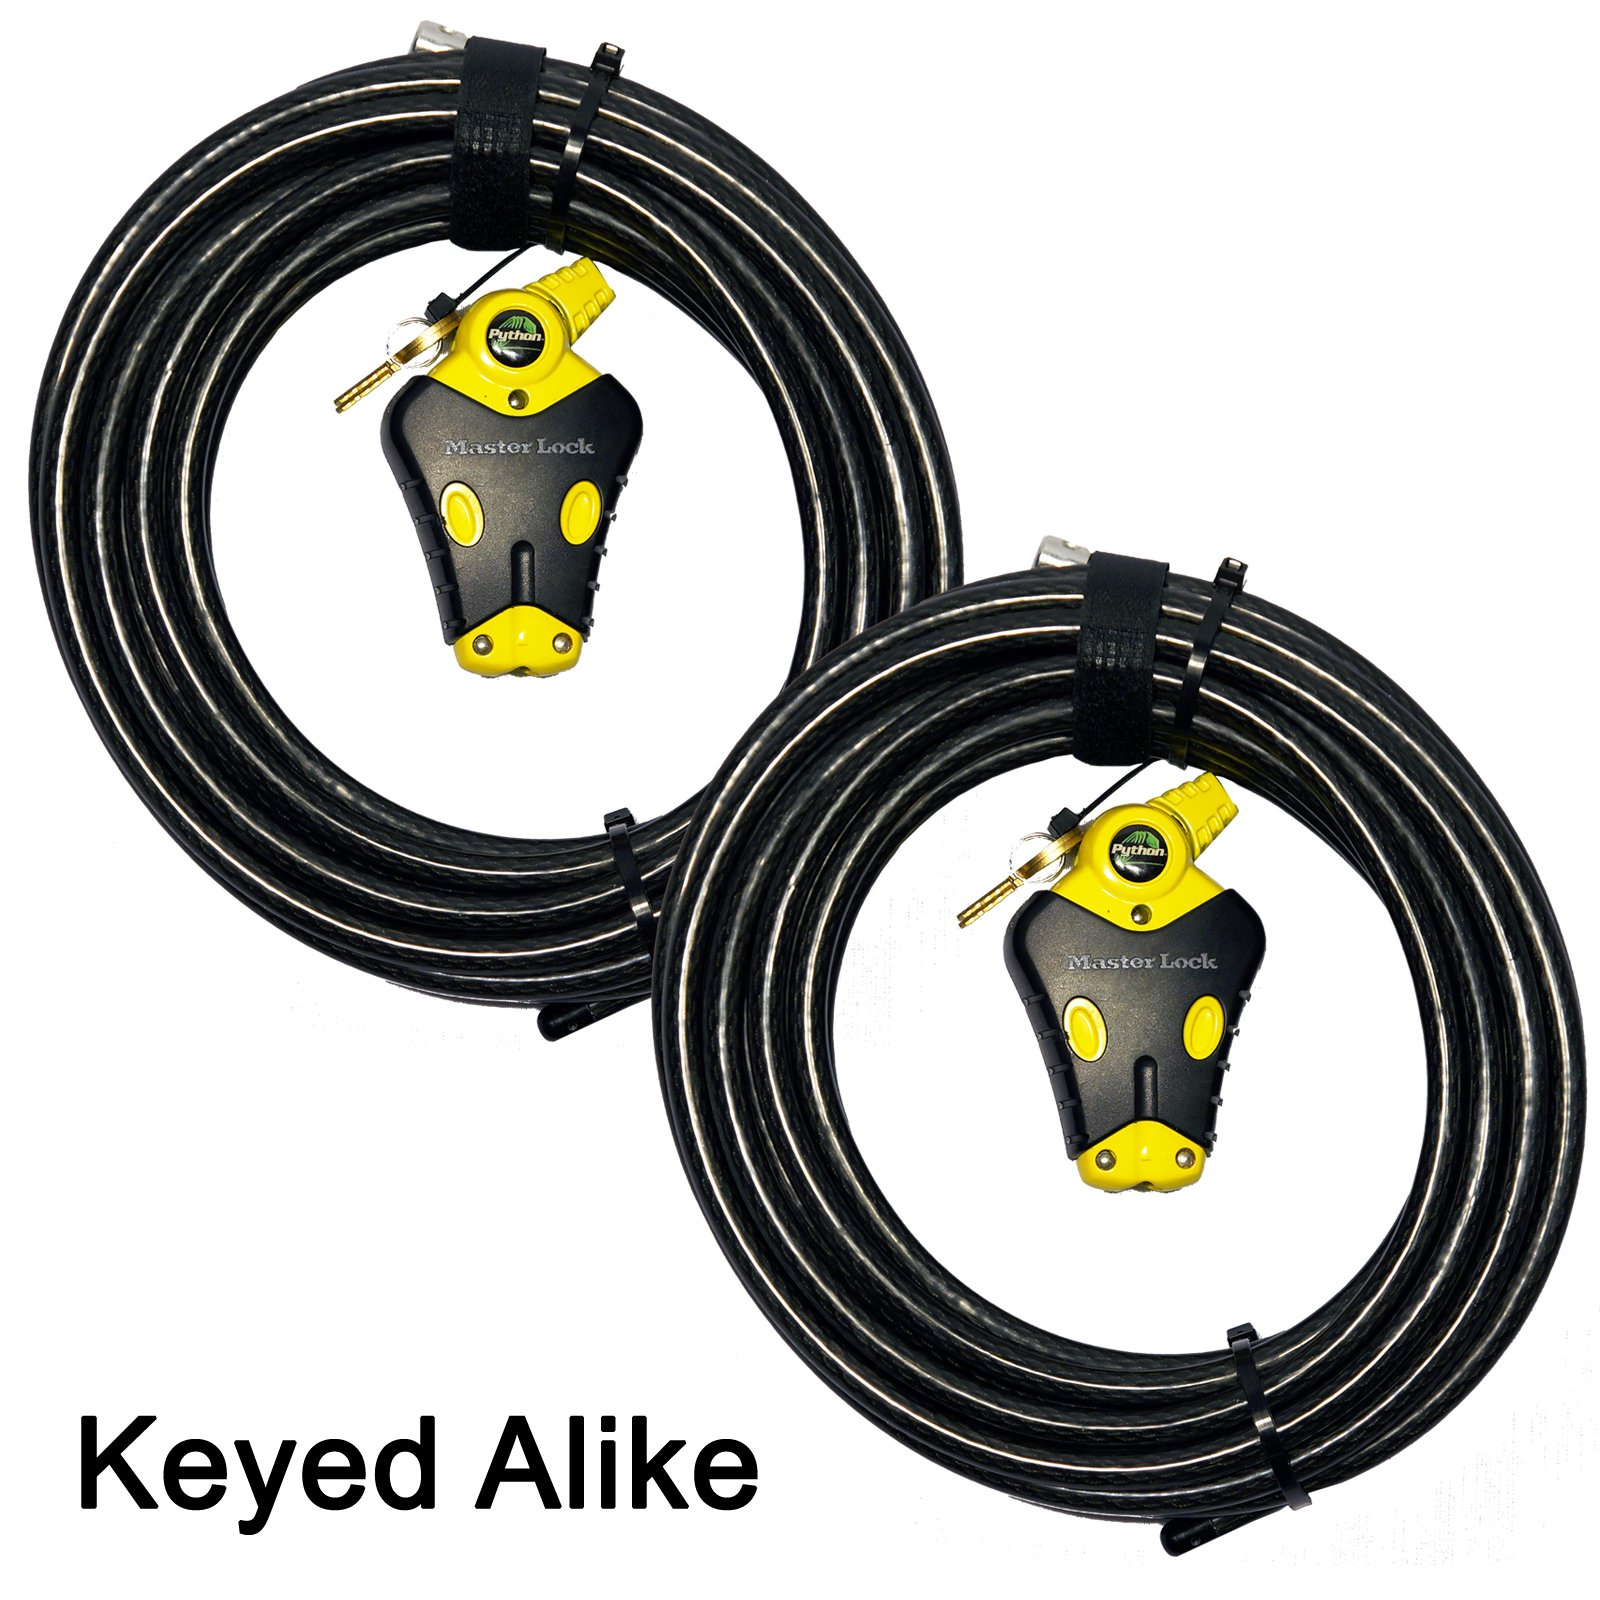 Master Lock - Two 30 ft Python Adjustable Cable Locks Keyed Alike, #8413KACBL-30-30